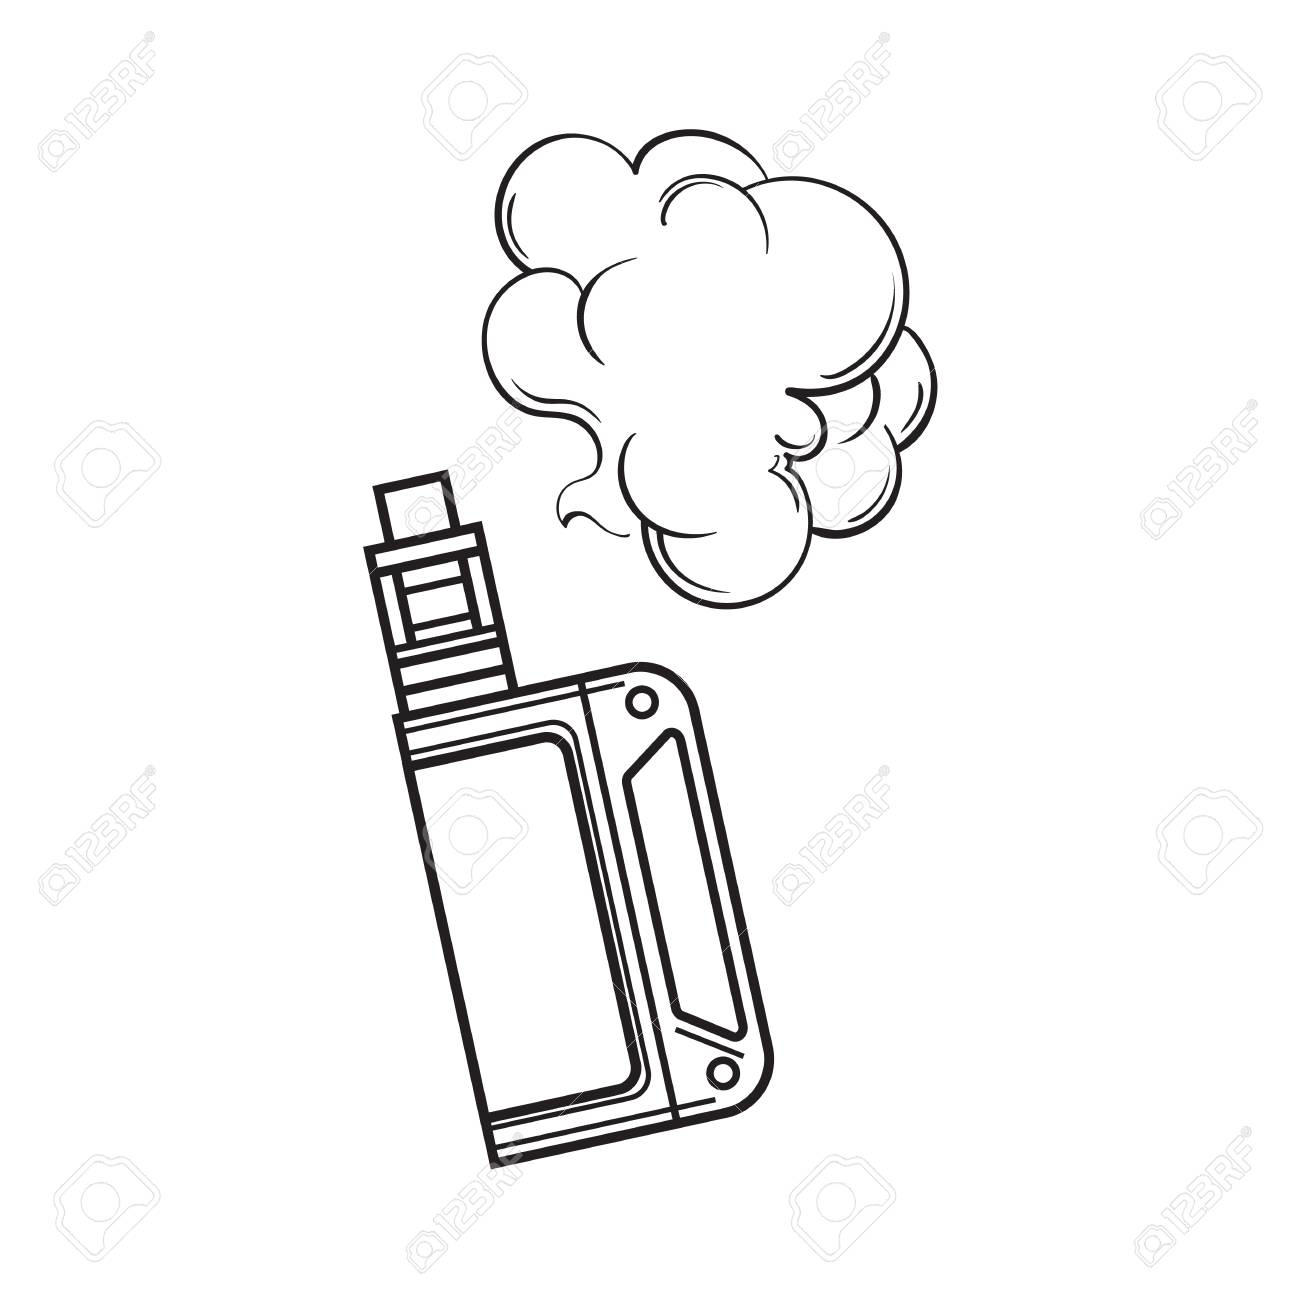 1300x1300 Hand Drawn Vape, Vaping Device With Smoke Cloud, Black And White